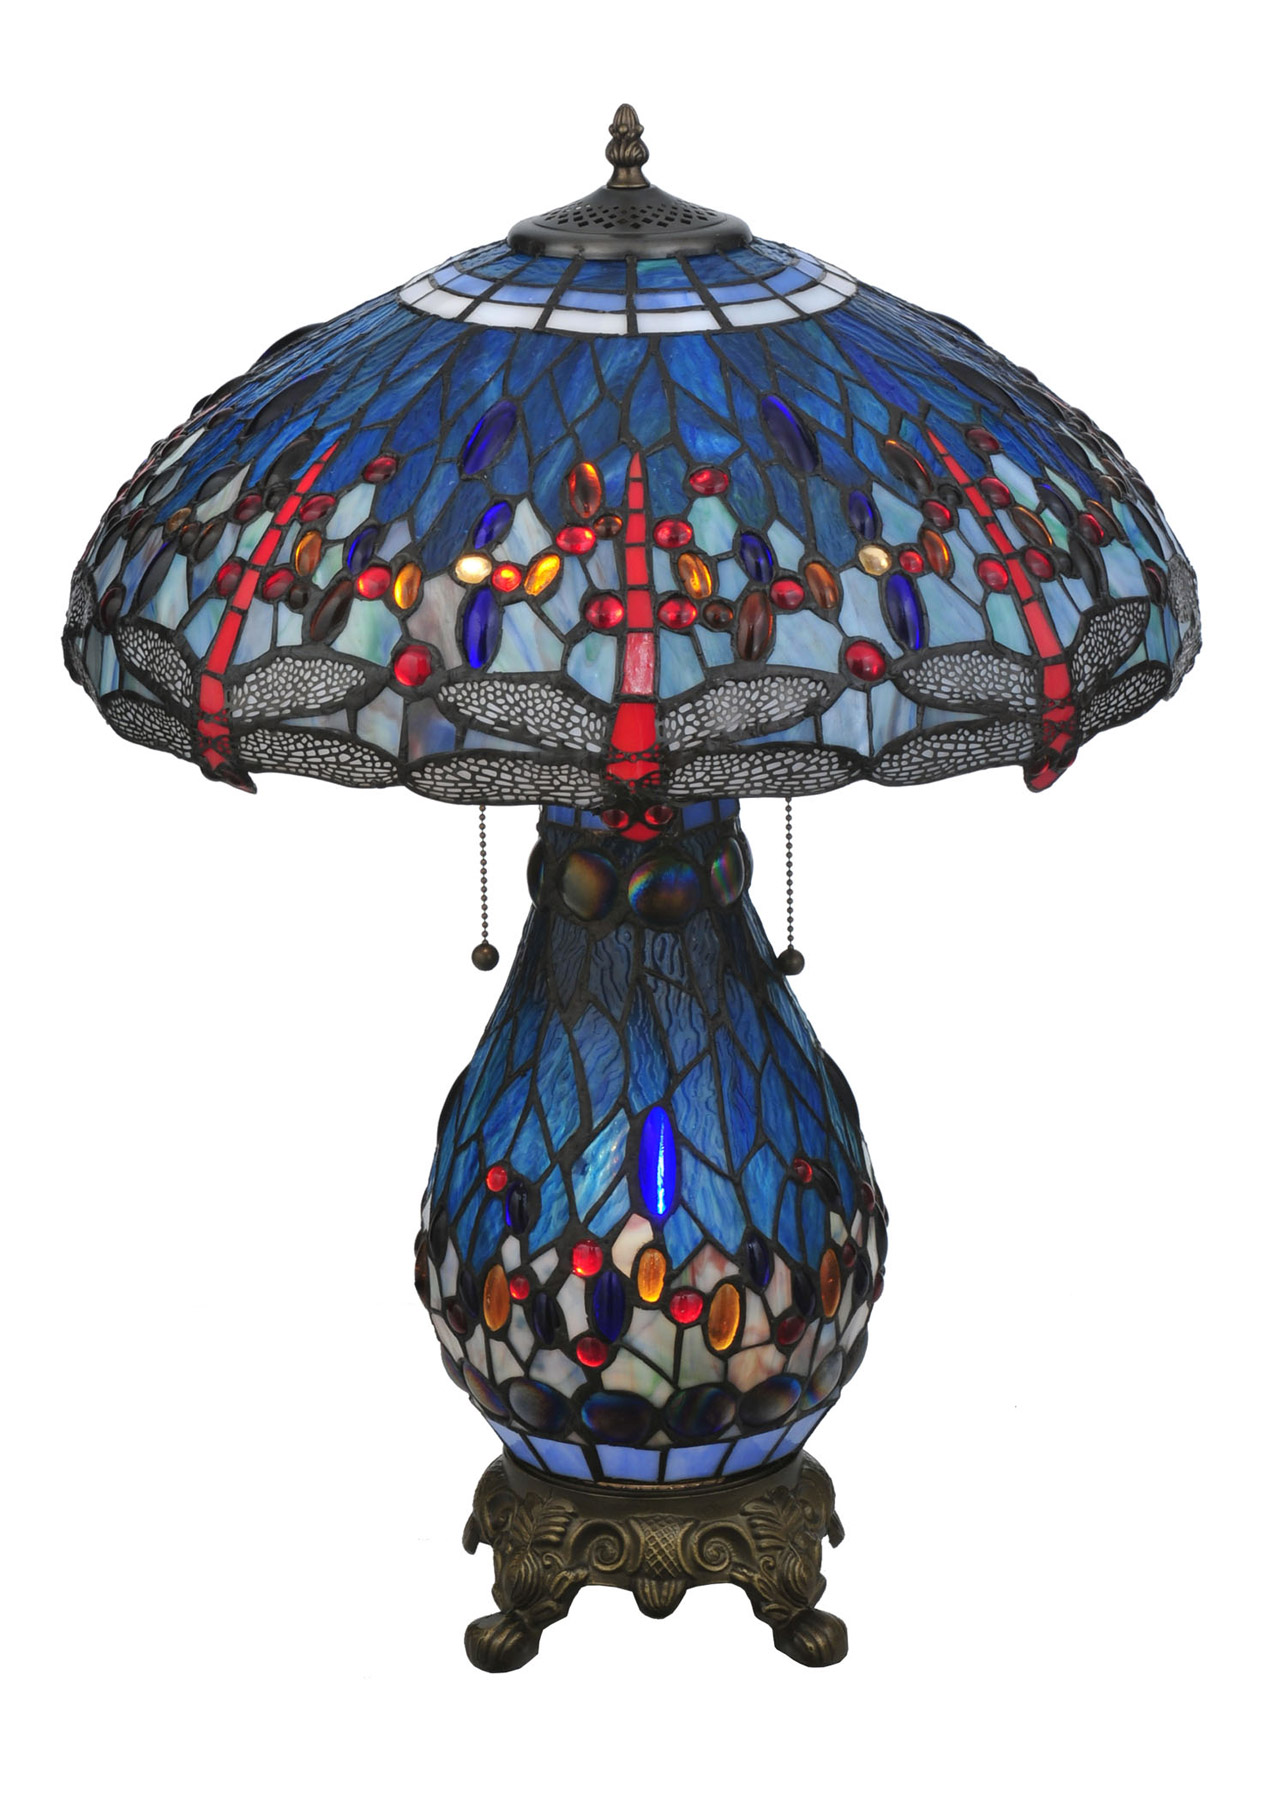 Meyda 118840 Hanginghead Dragonfly Table Lamp